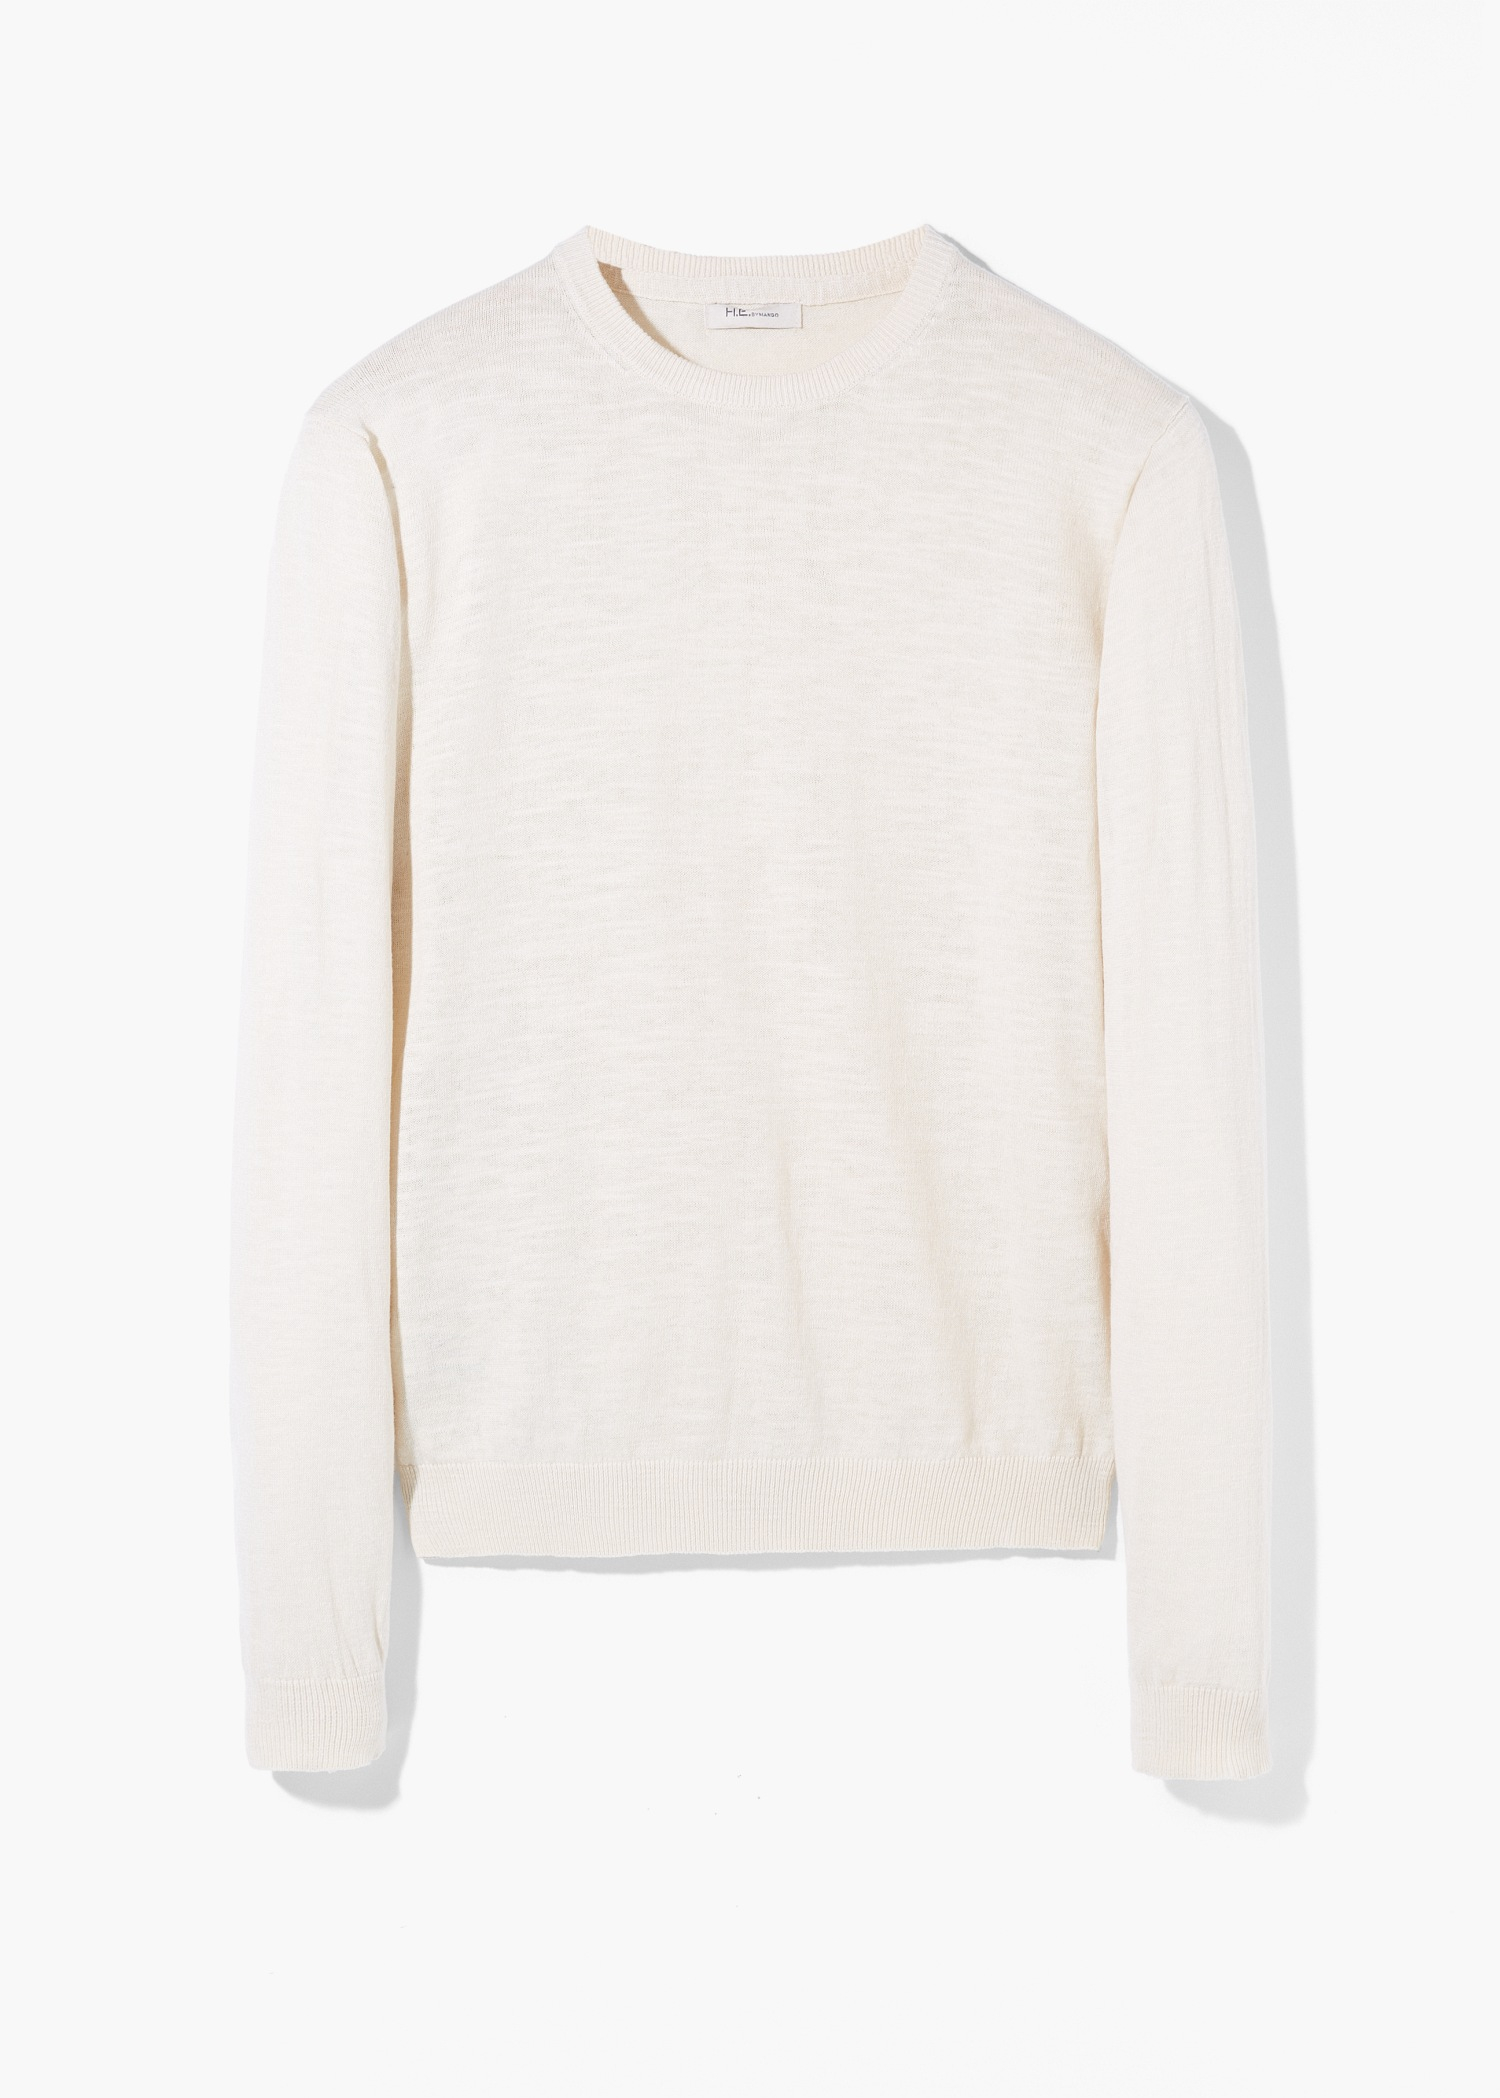 Mango Fine-Knit Cotton Sweater in Natural for Men | Lyst